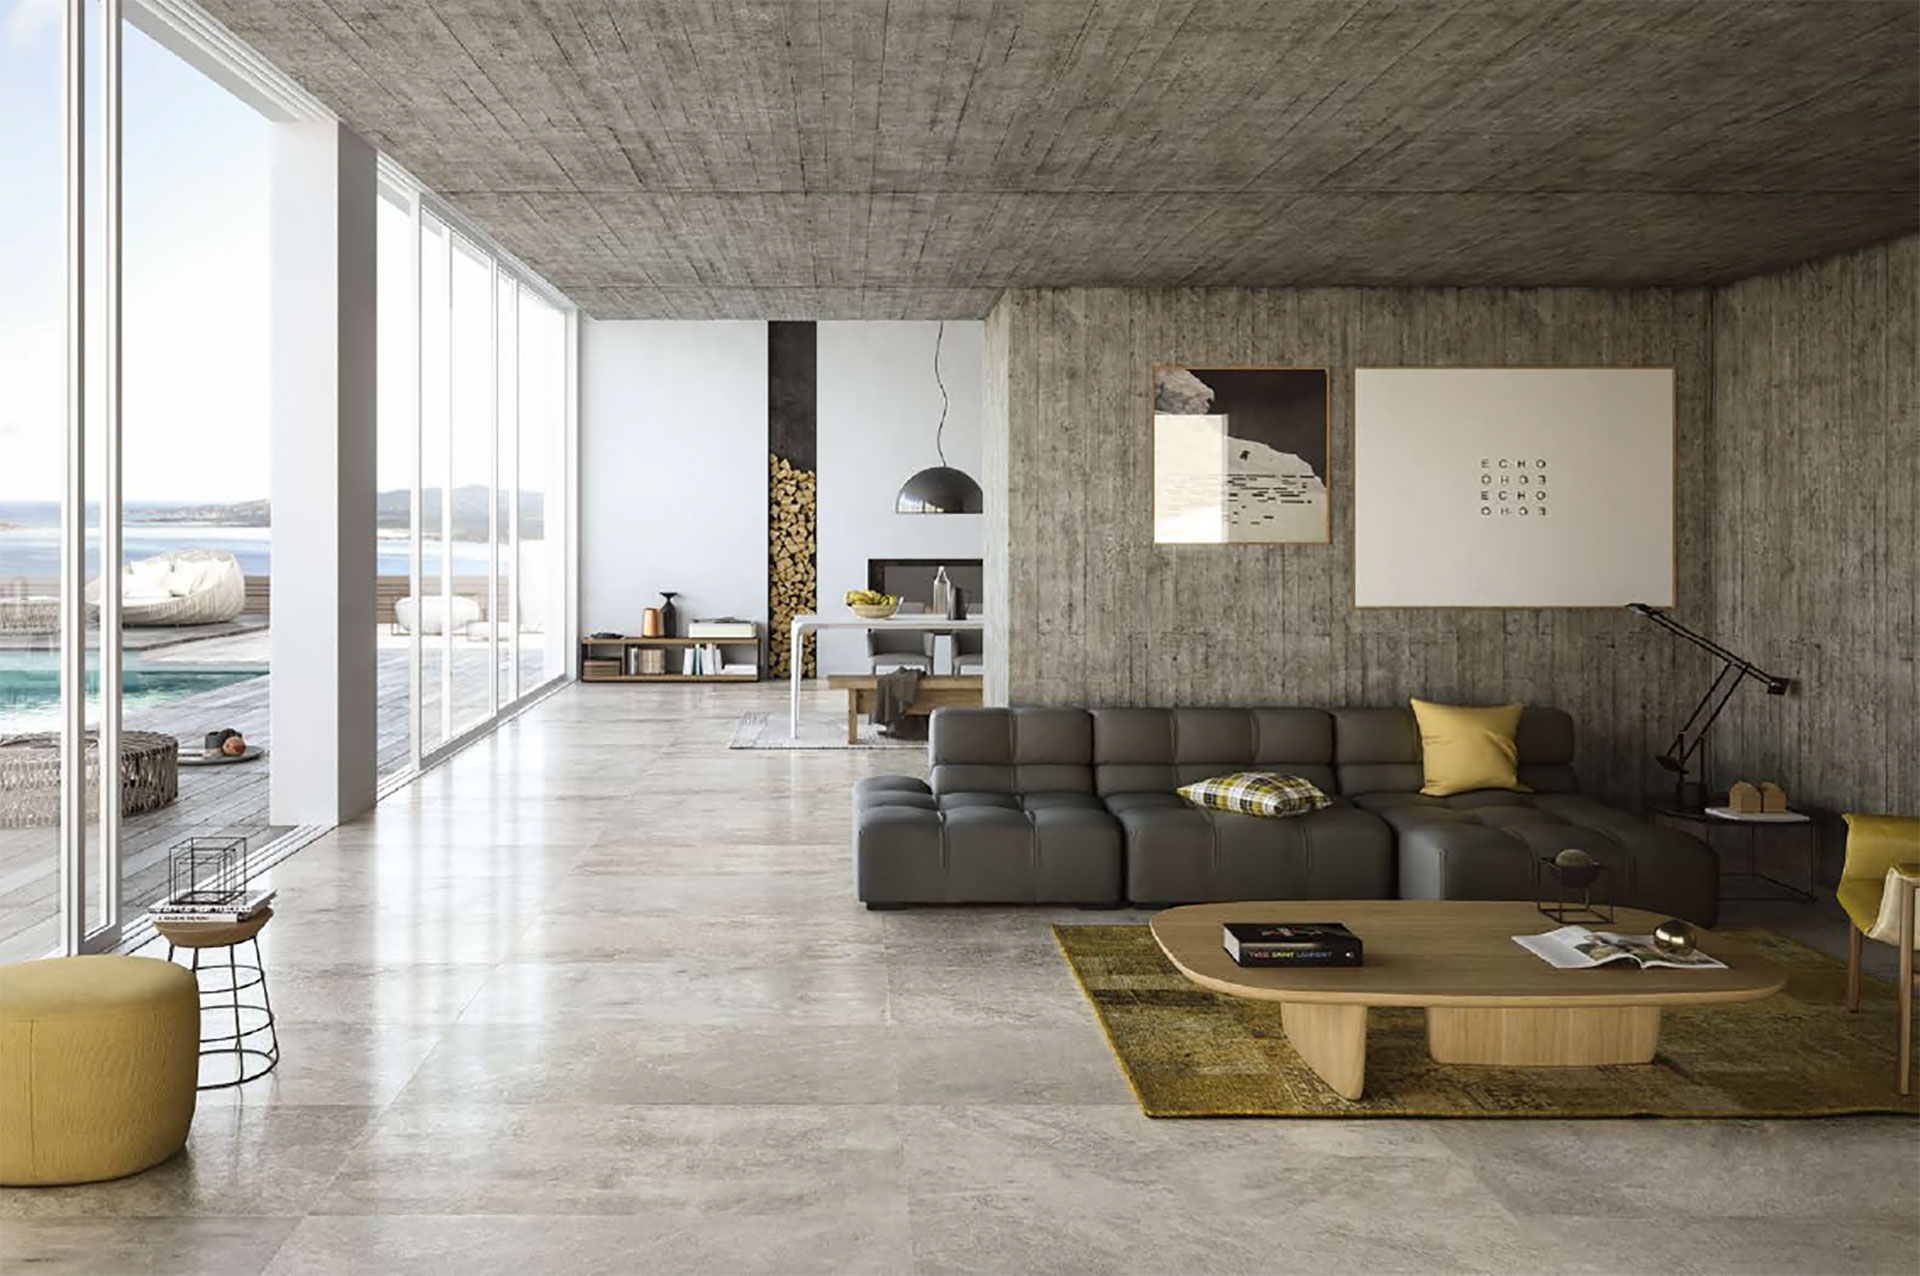 Adaptable space – another pattern of urban living